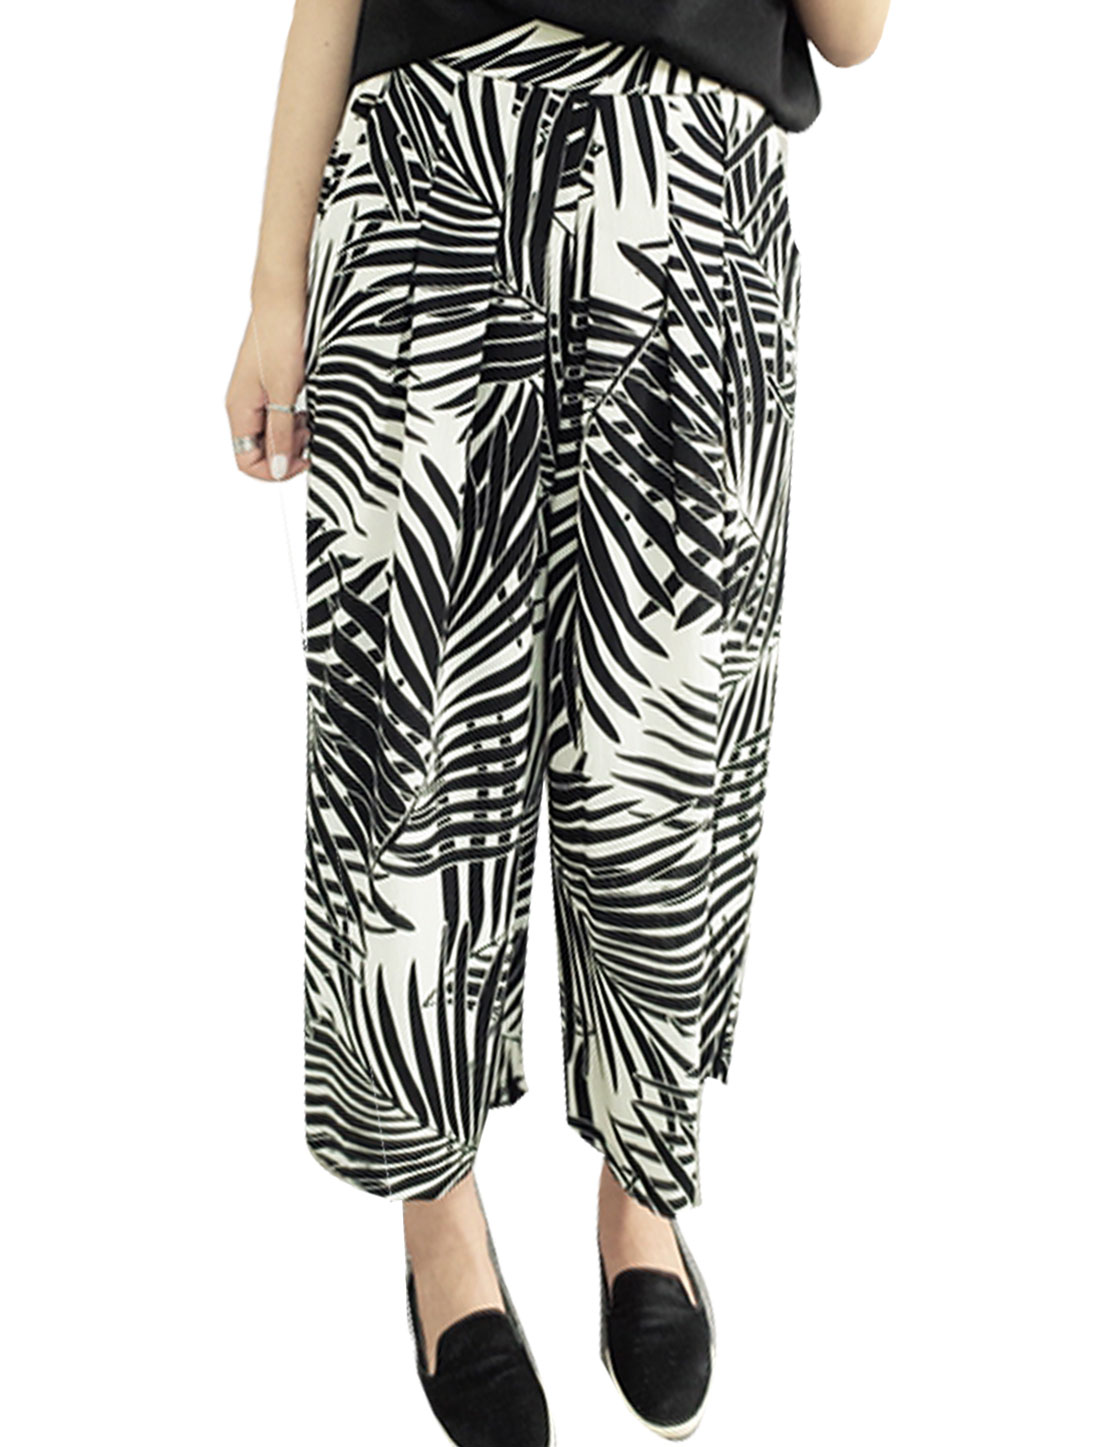 Women Elastic Waist Leaves Prints Cropped Wide Leg Pants Black M